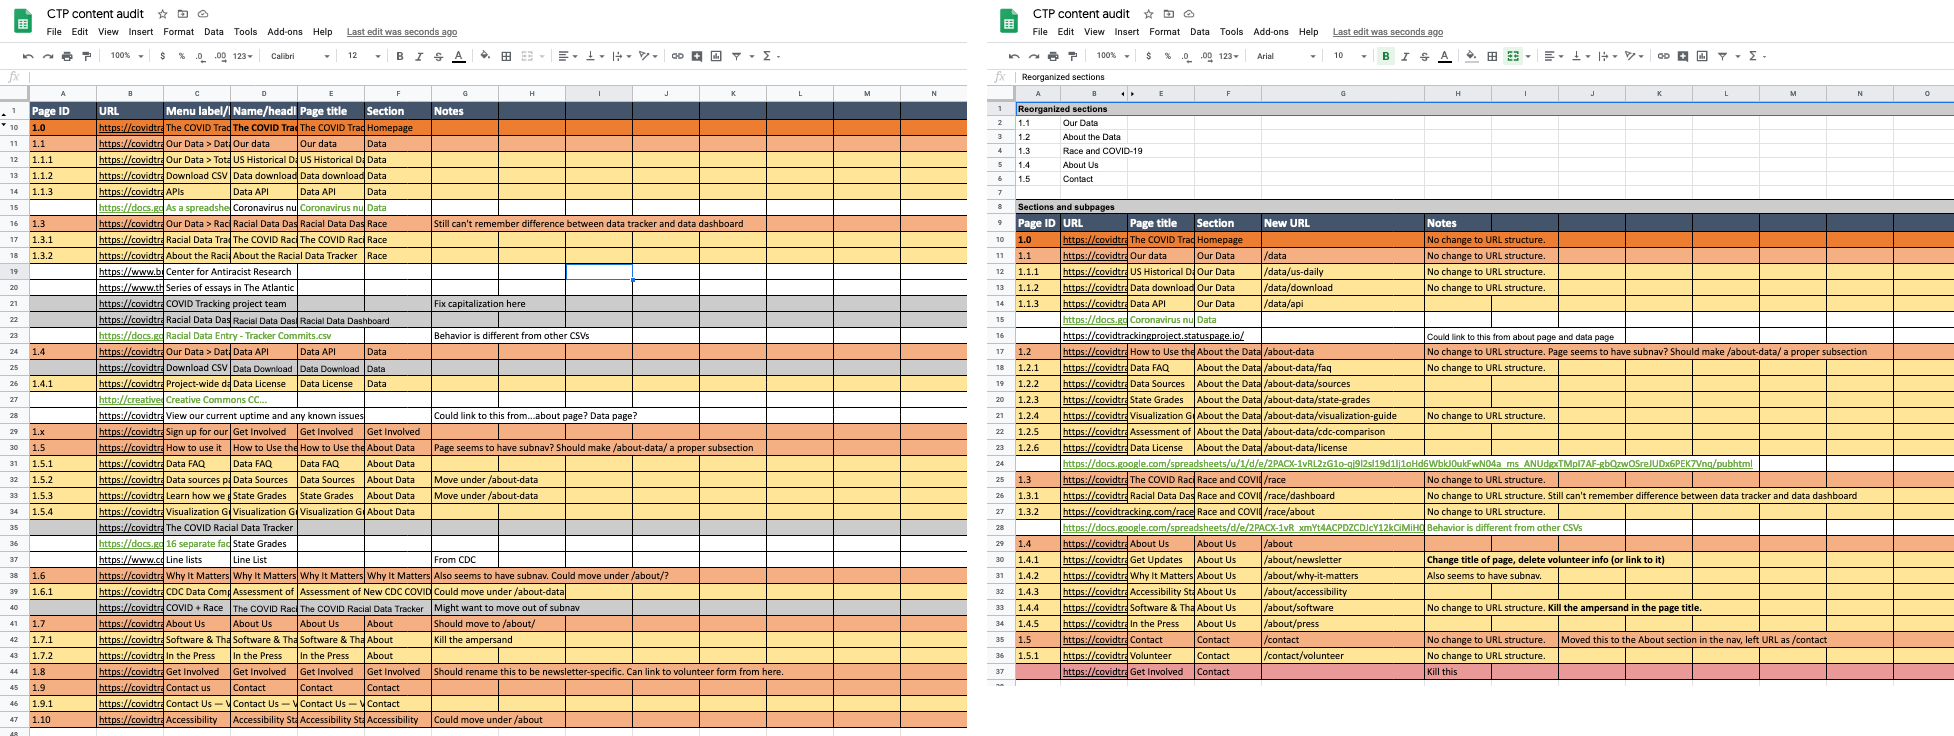 Two screenshots side-by-side, showing two spreadsheets with colored cells. The spreadsheet on the left is longer and the colors are out of order. The spreadsheet on the right is shorter and the colors are in order.